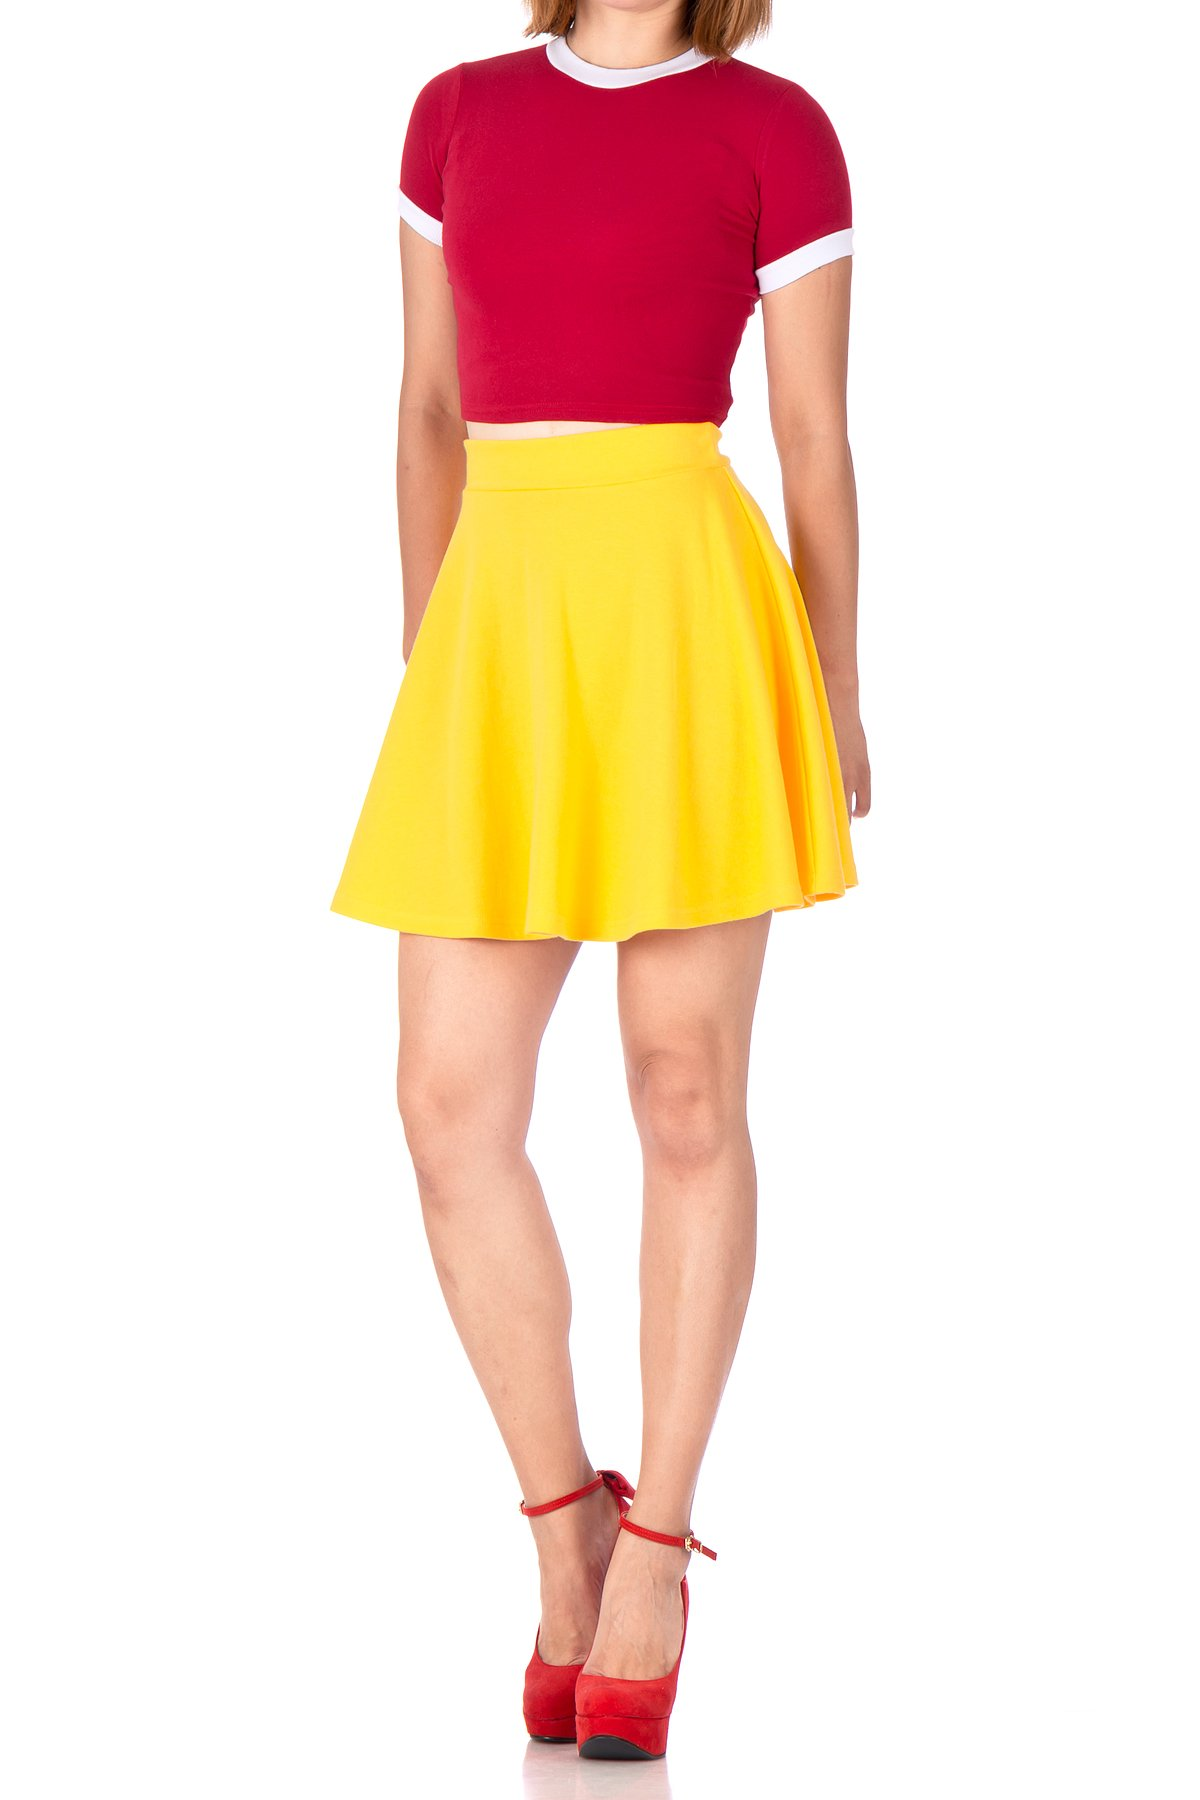 Basic Solid Stretchy Cotton High Waist A line Flared Skater Mini Skirt Yellow 03